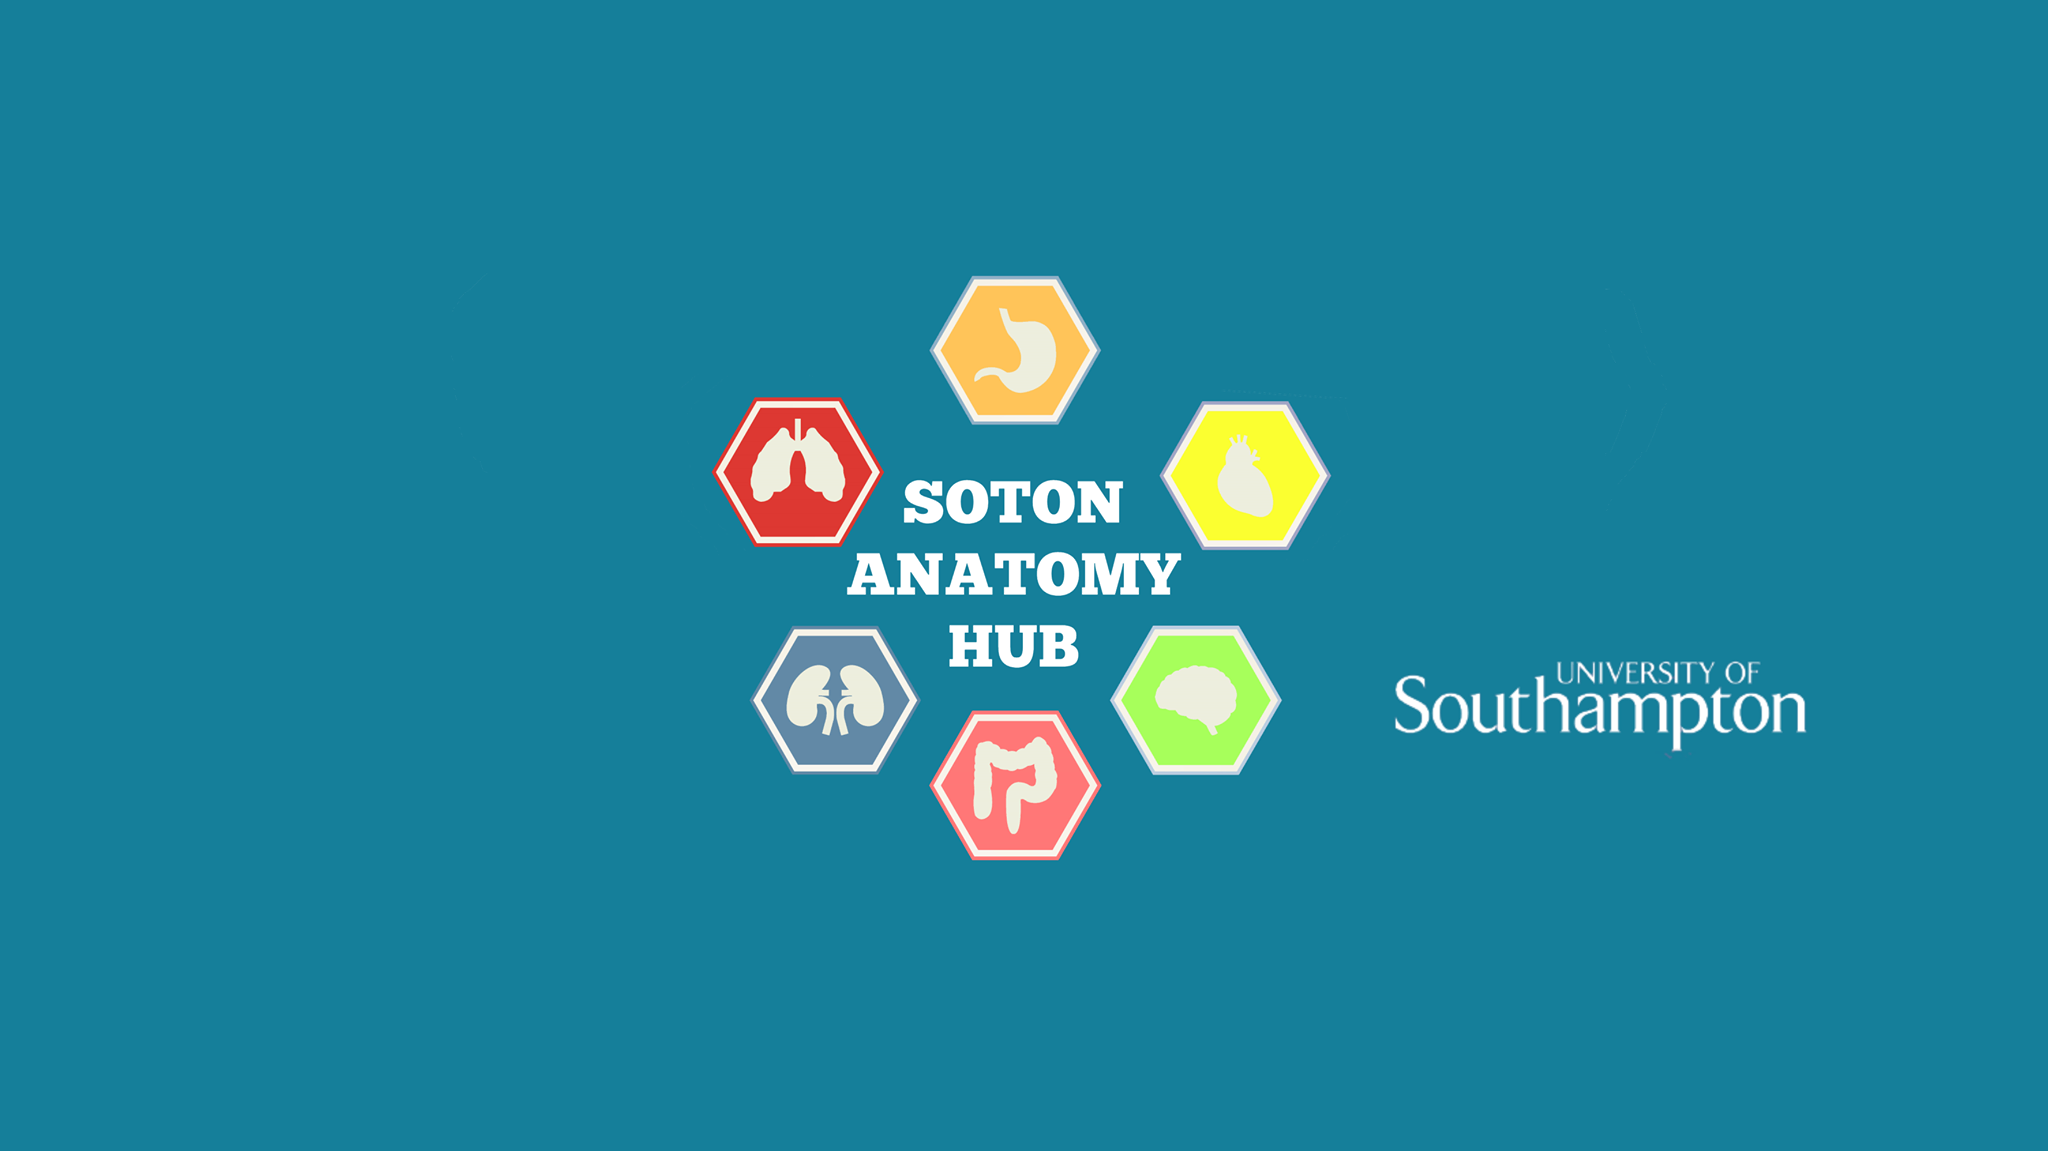 Soton Anatomy Hub - Soton Anatomy Hub is the home of all things anatomy! Here you can find loads of useful resources to supplement your learning.